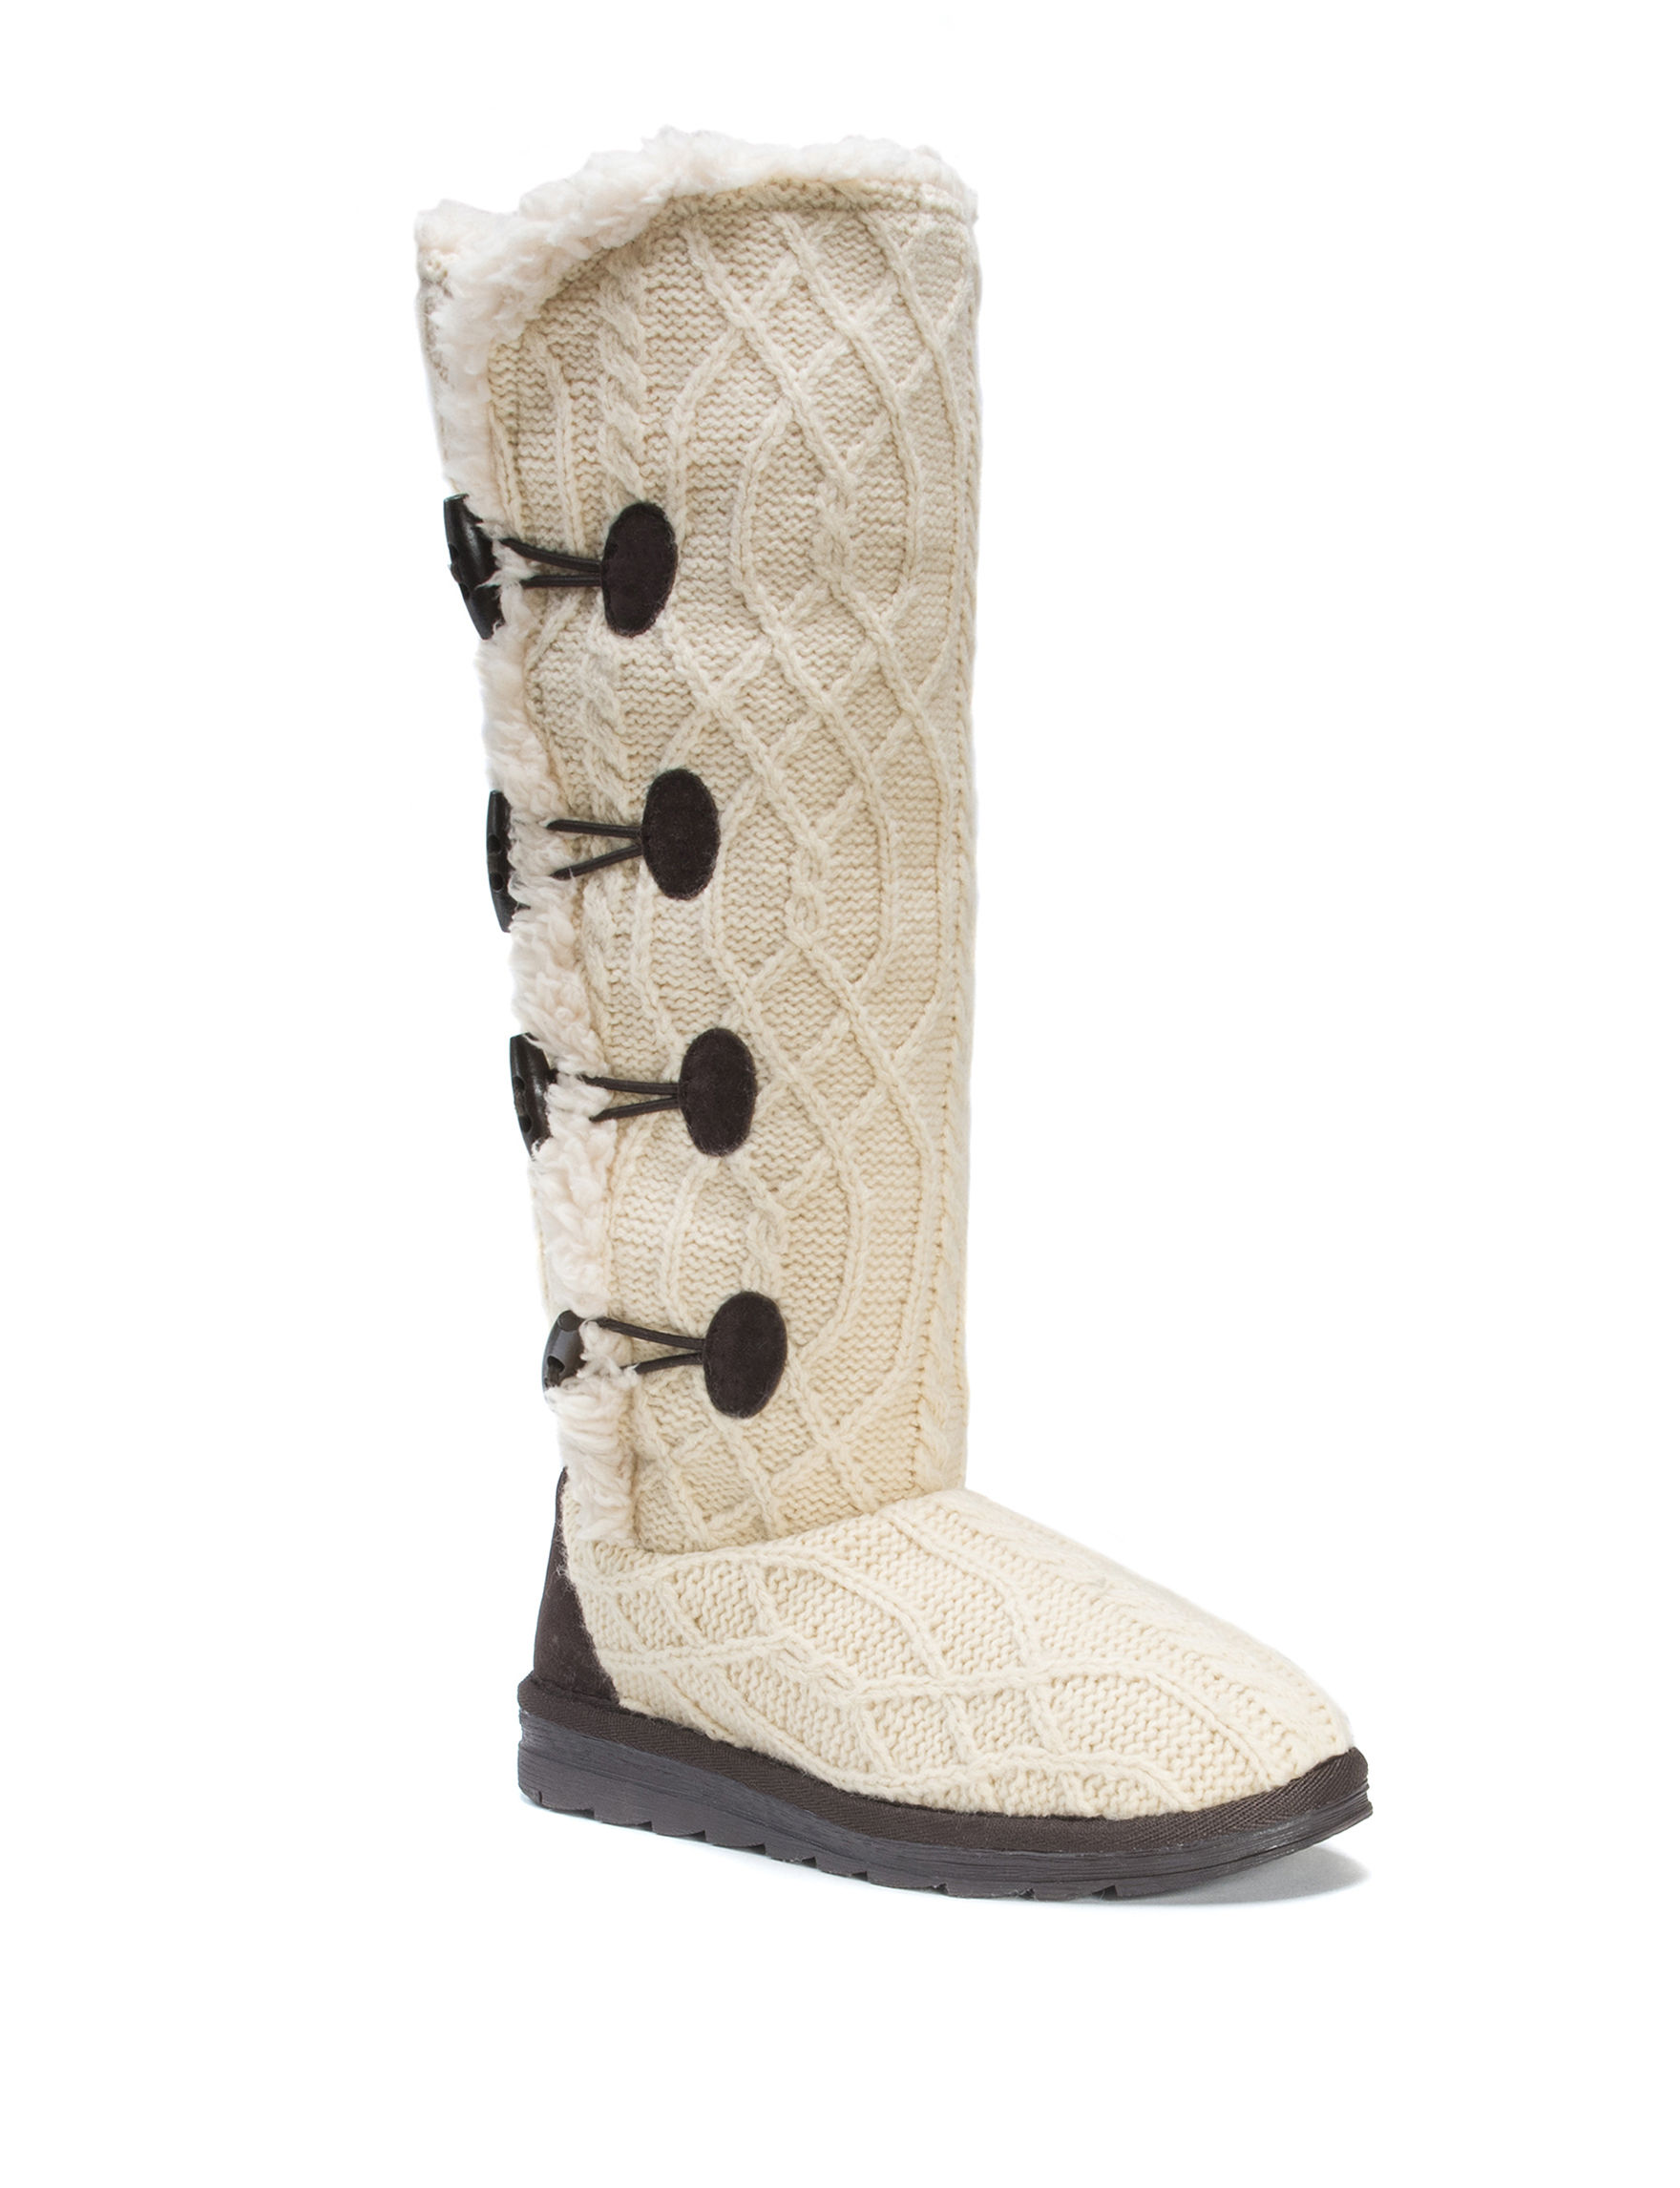 Muk Luks Cream Winter Boots